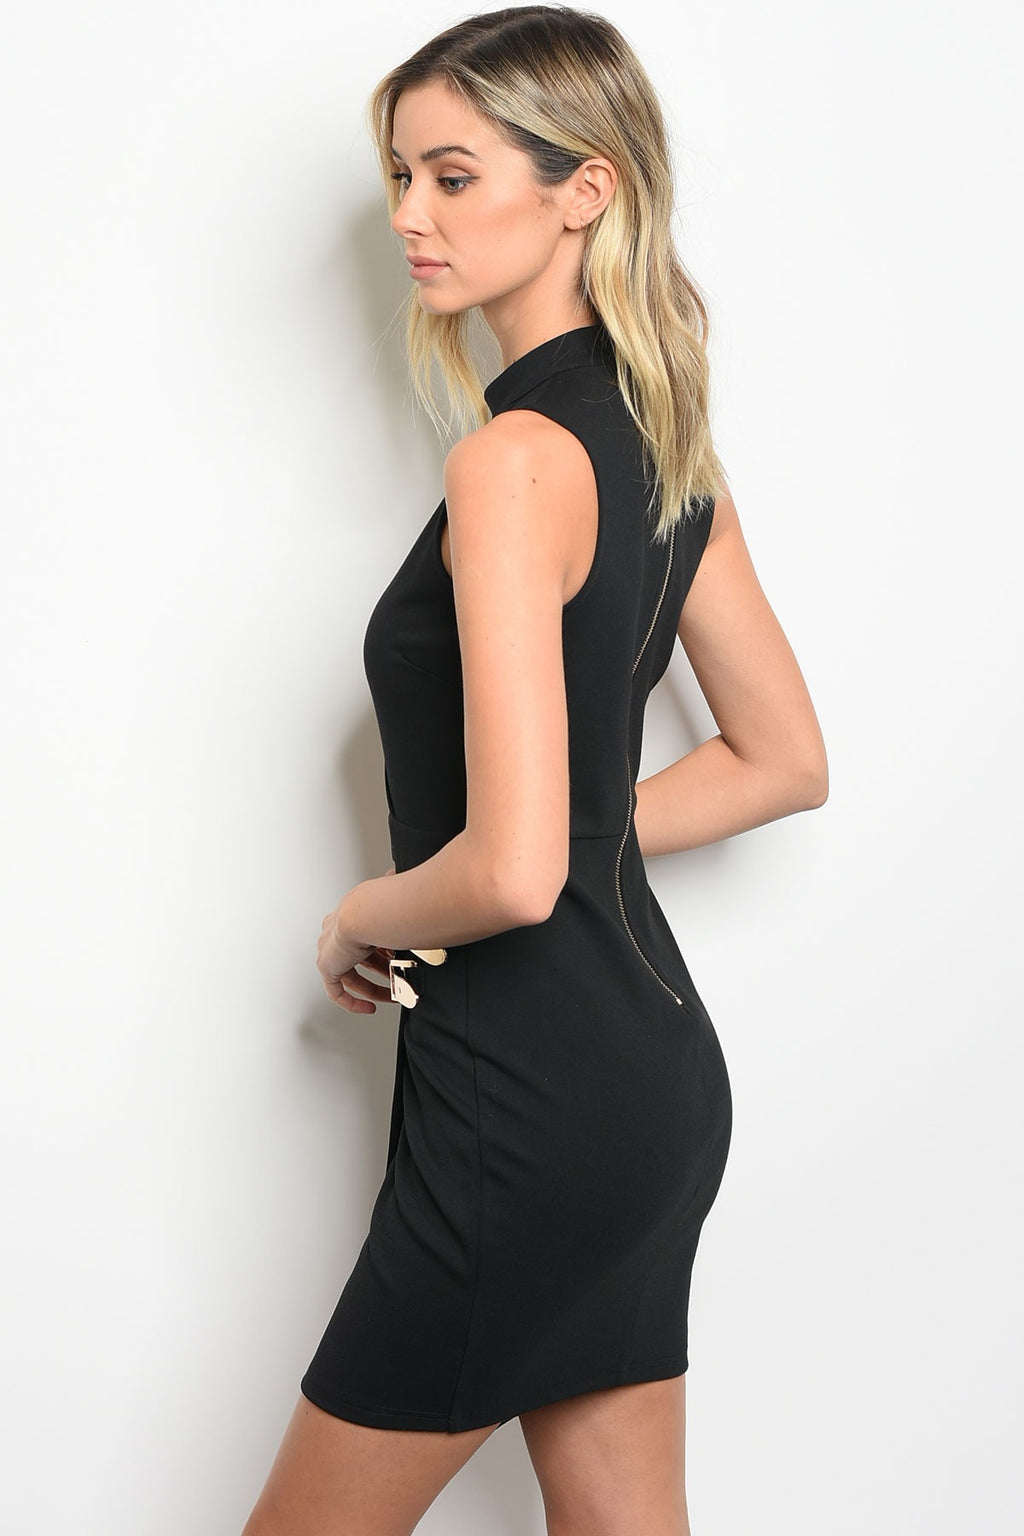 Black Sleeveless body dress with choker. V cutout front. Gold metal buckles on the hemline.